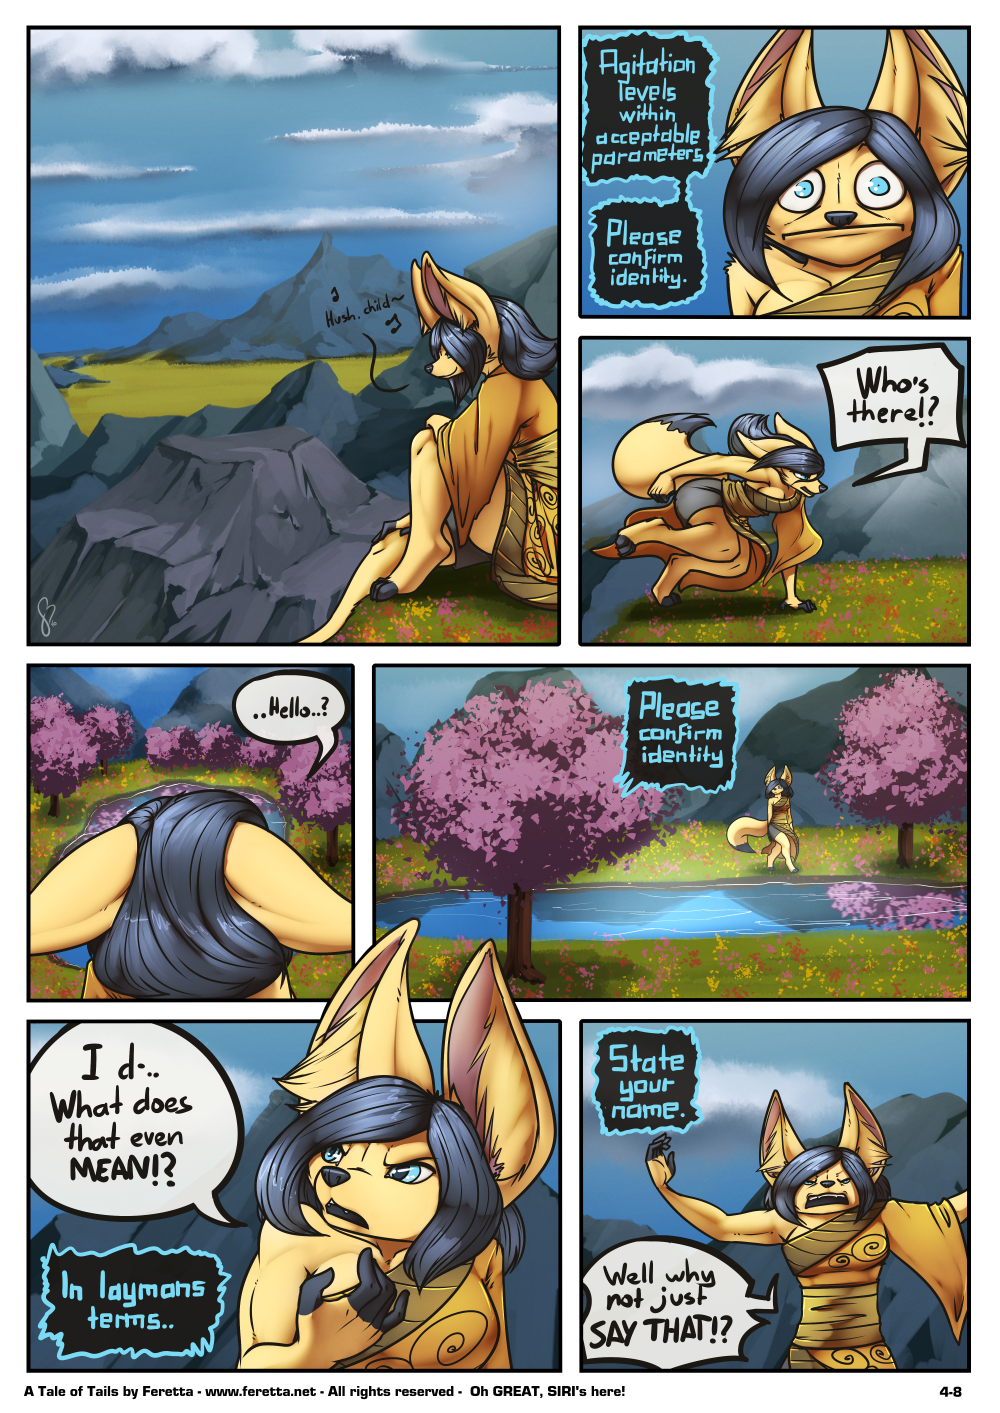 A Tale of Tails, 4-8